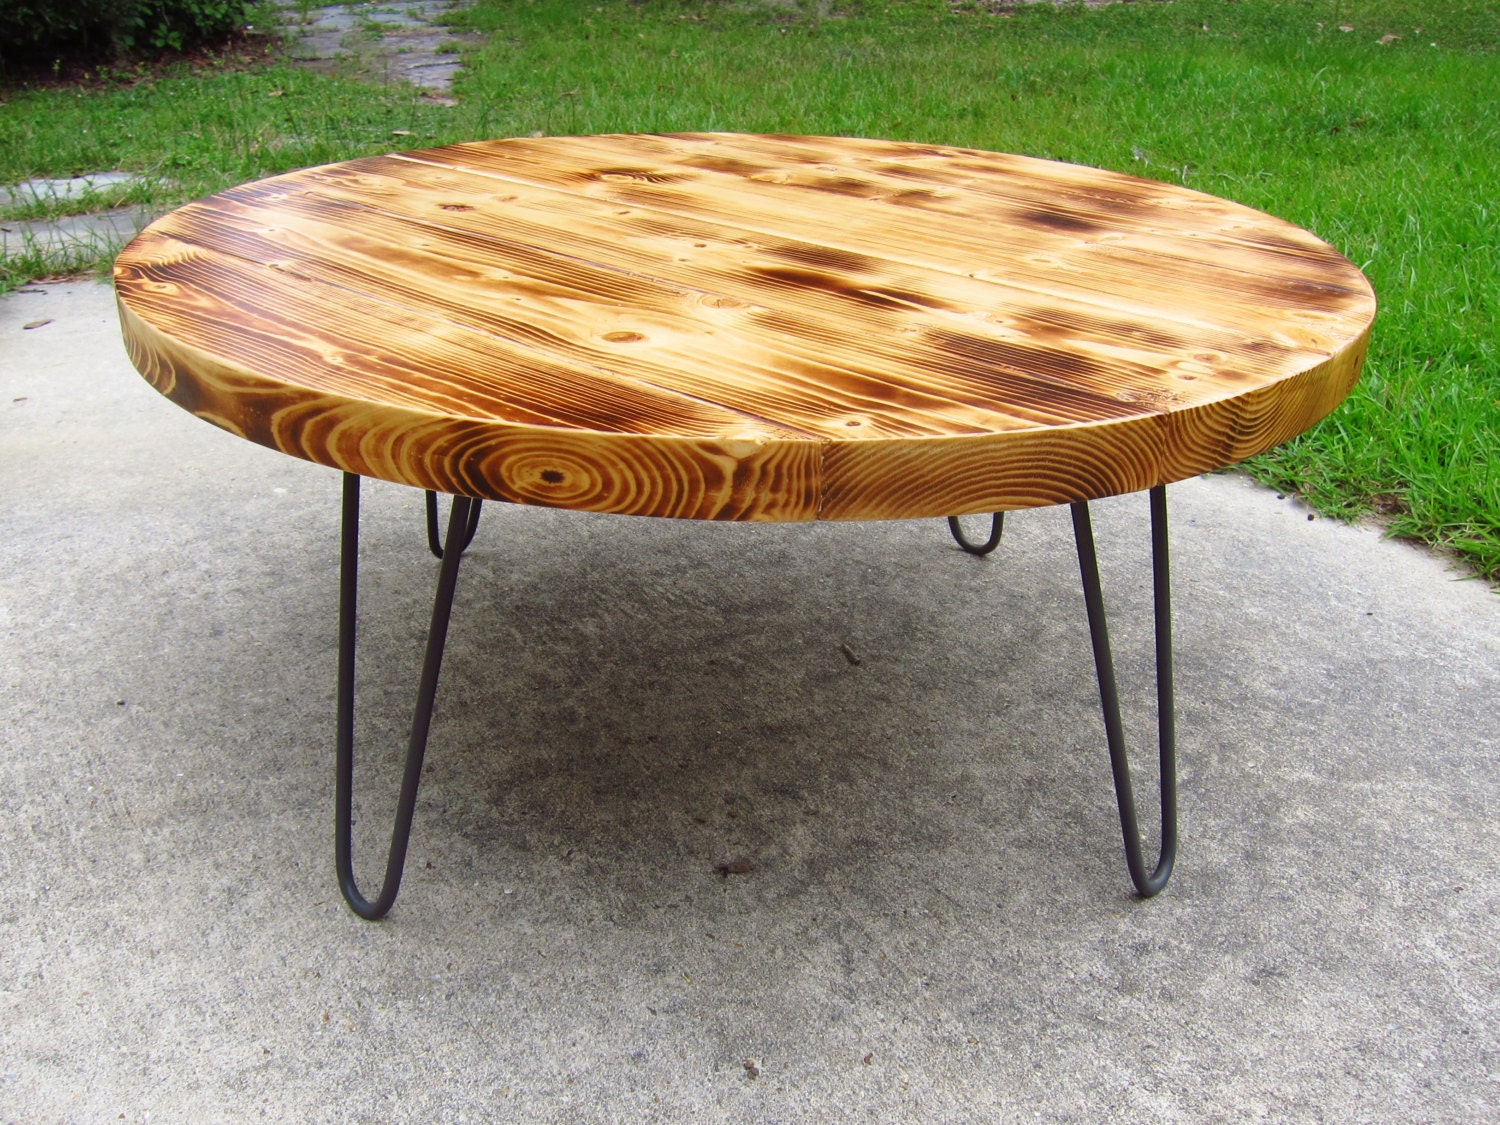 Rustic round coffee table Rustic round coffee table